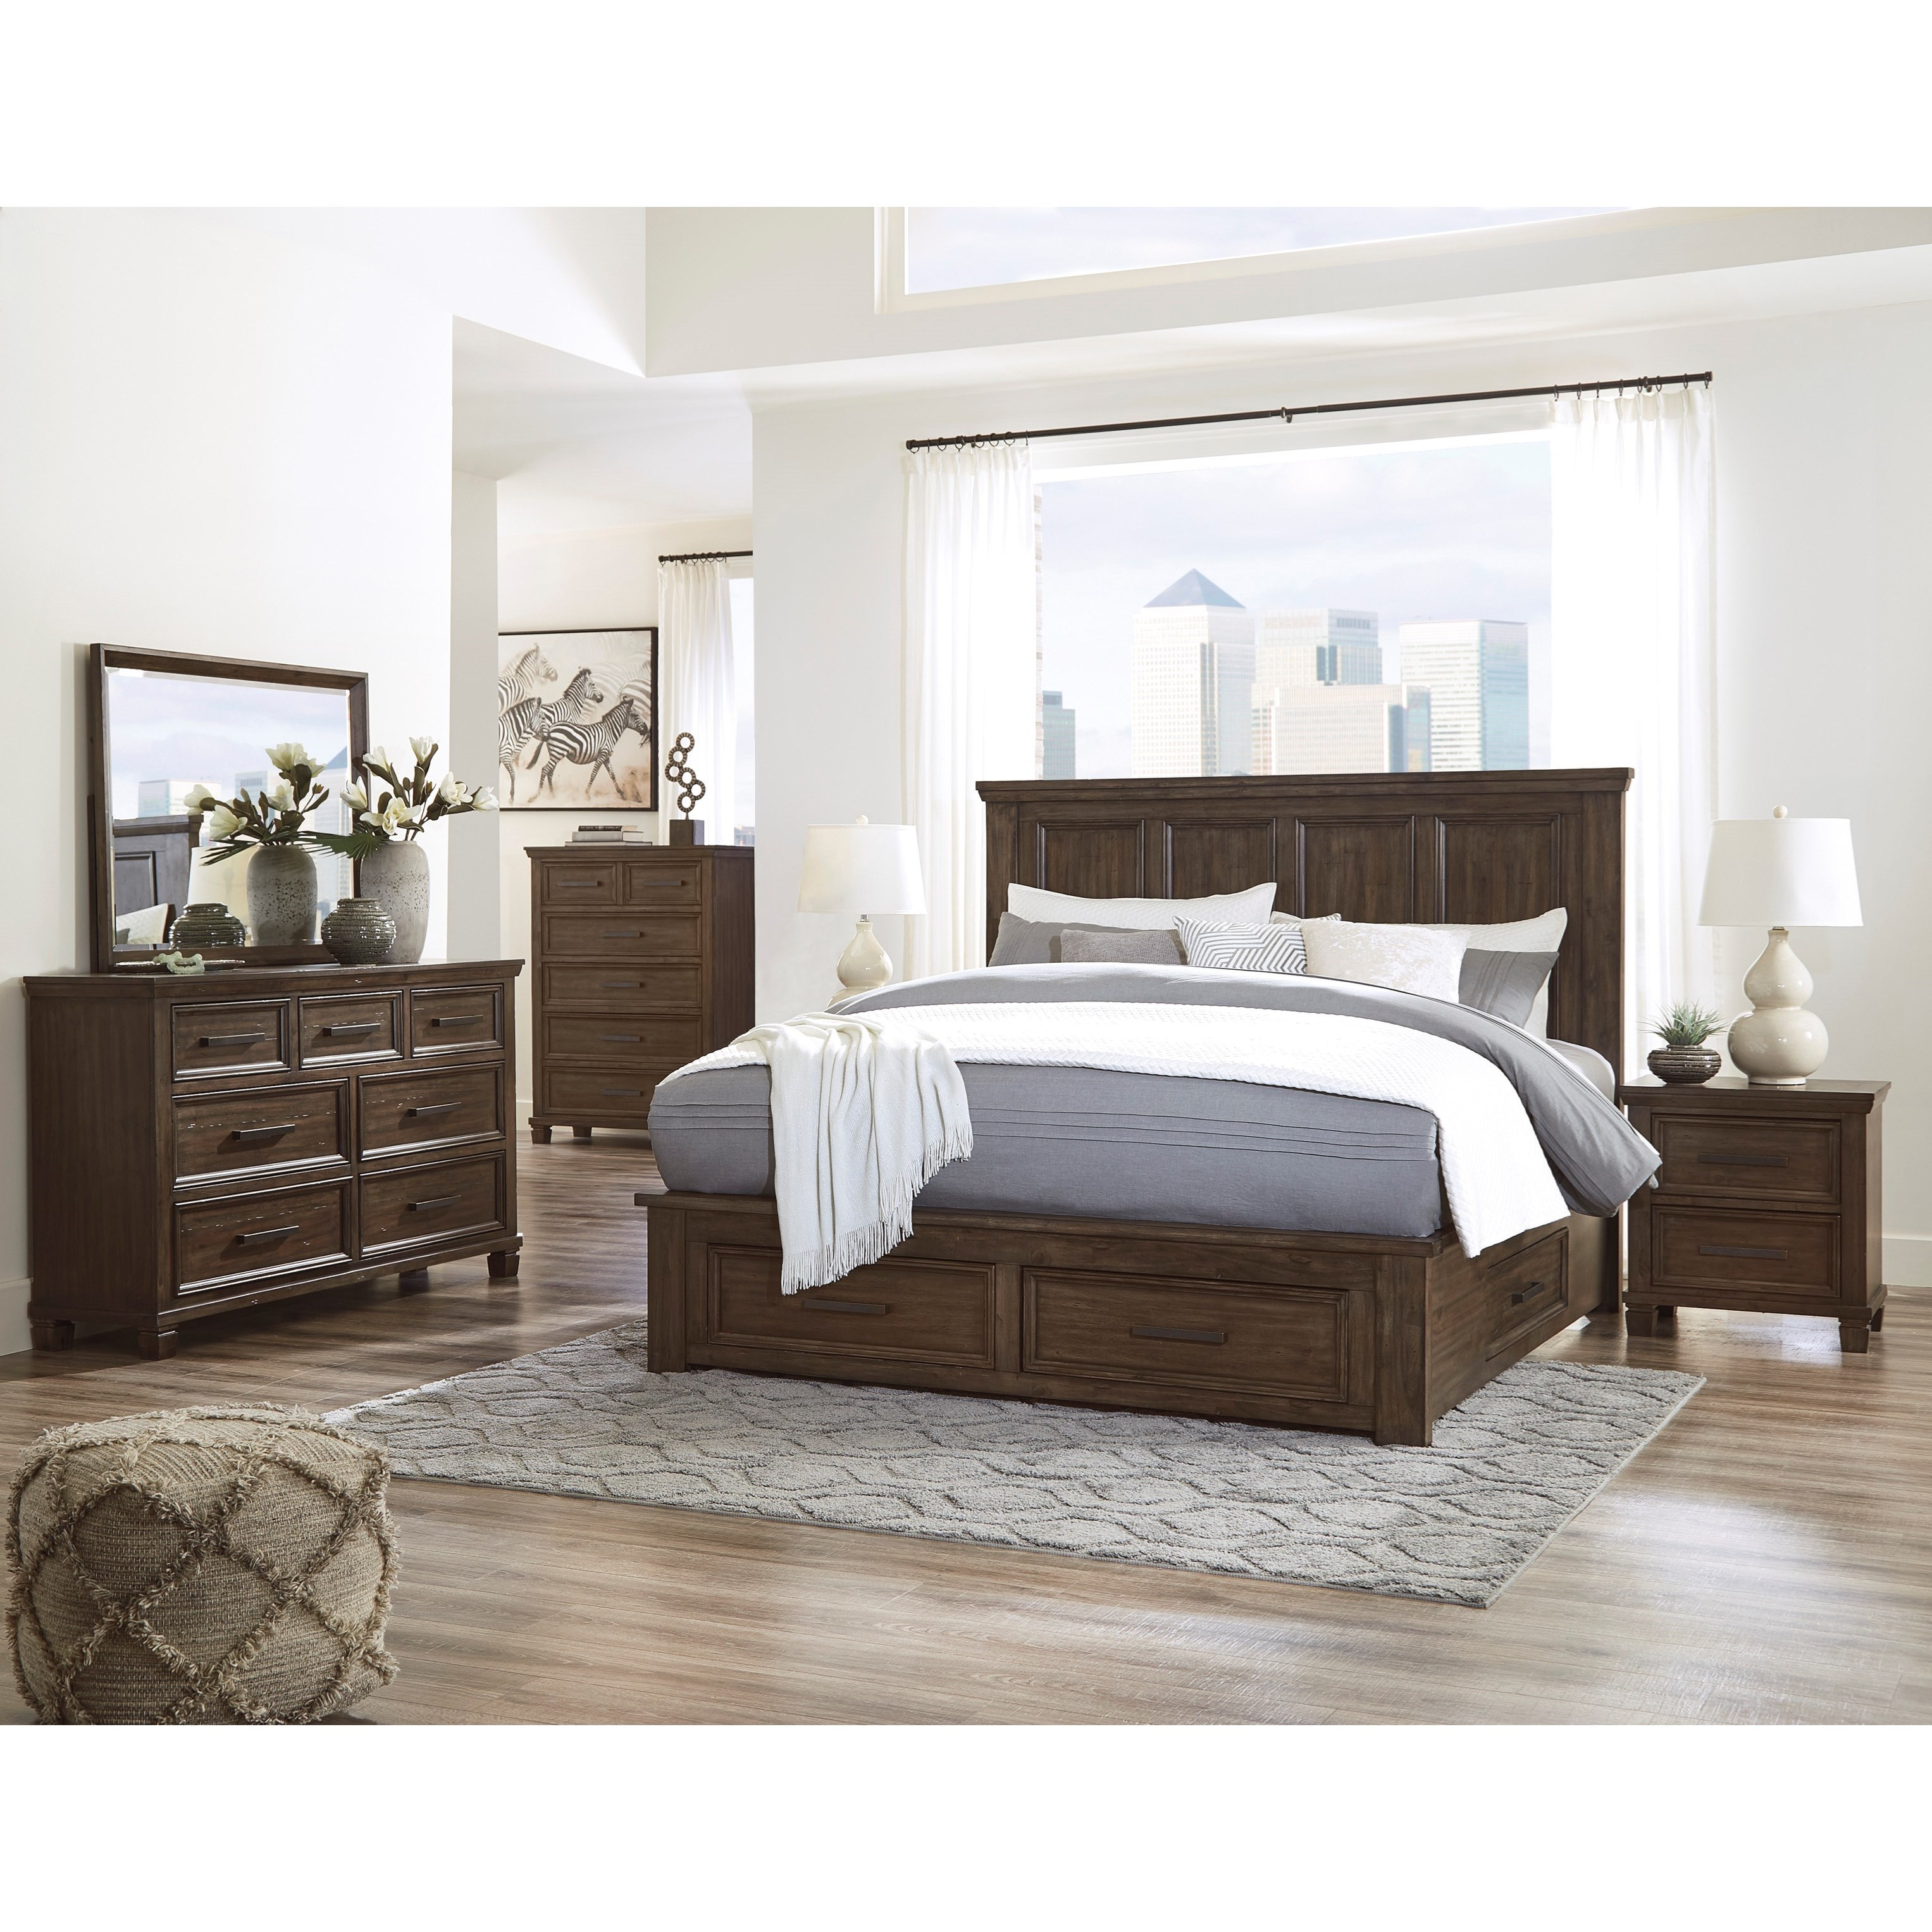 Johurst King Bedroom Group by Signature at Walker's Furniture